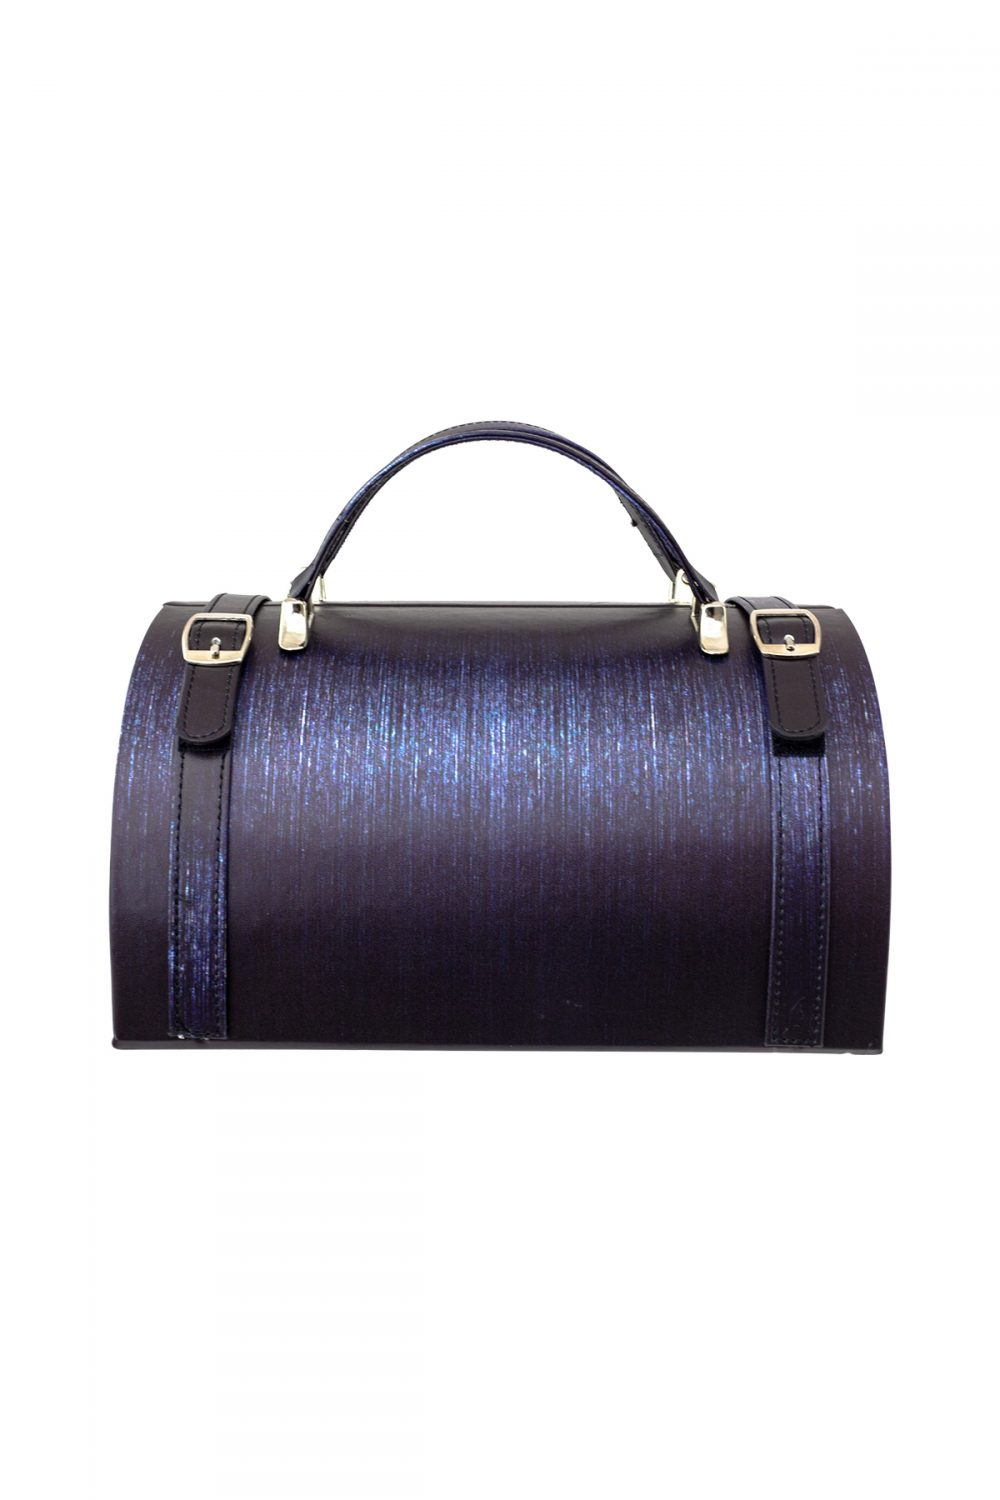 Bionyx Transformative Limited Edition Mini Suitcase side